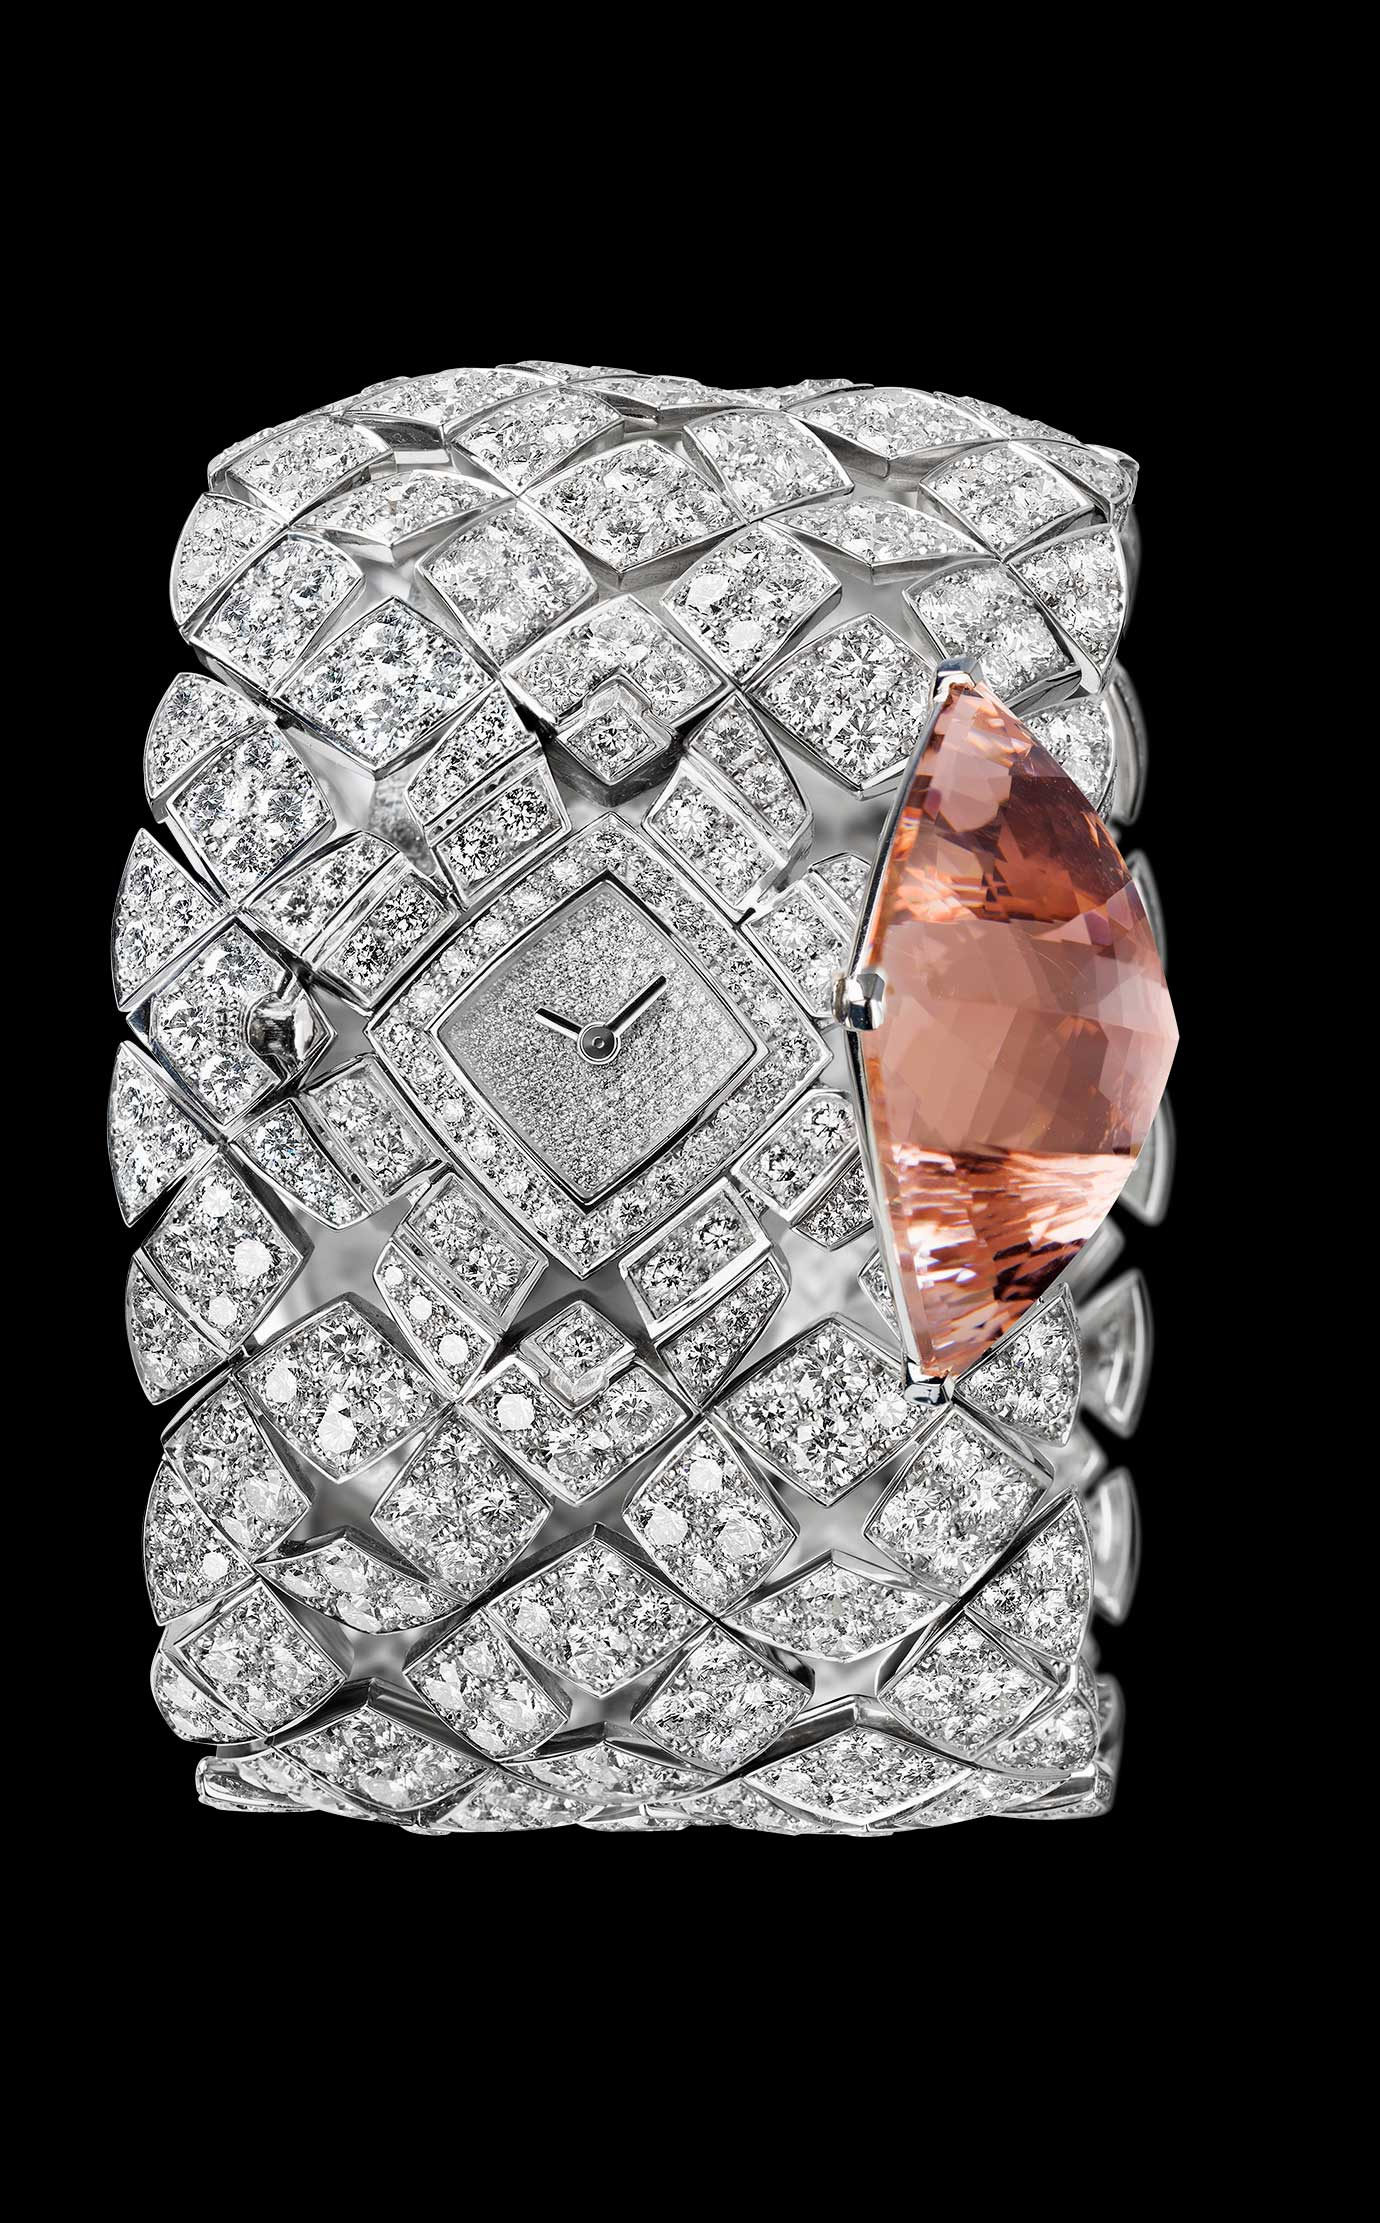 Les Eternelles de CHANEL. Secret cuff watch in 18K white gold. 43.64-carat pink morganite pyramid. - Open